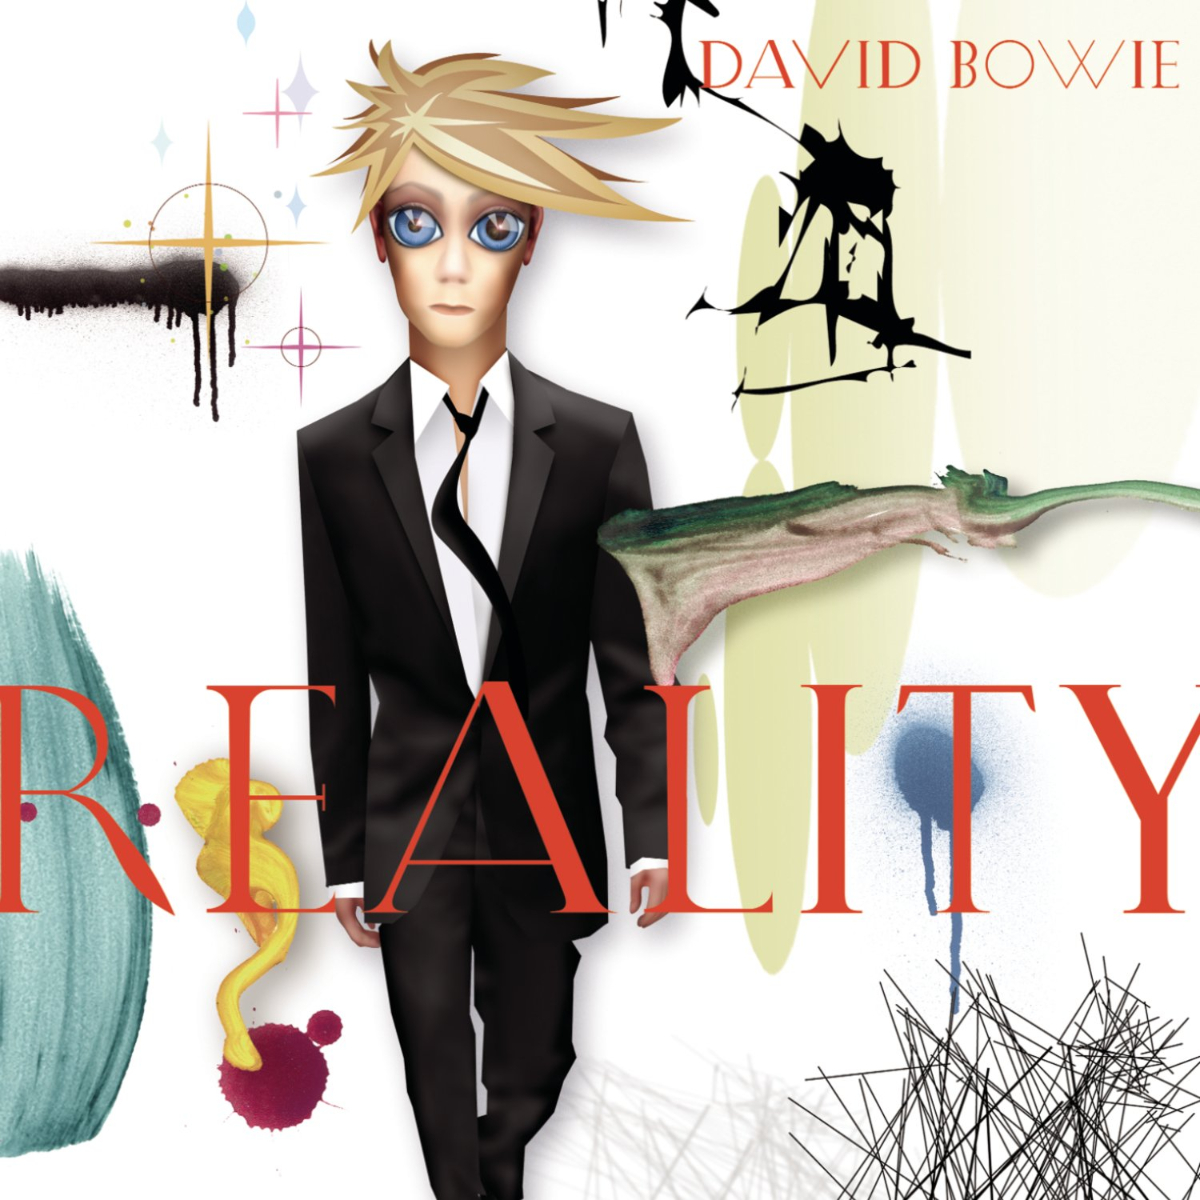 David Bowie - Reality (180 Gram White & Blue Swirl Vinyl / Limited Edition / Tri-fold Cover)